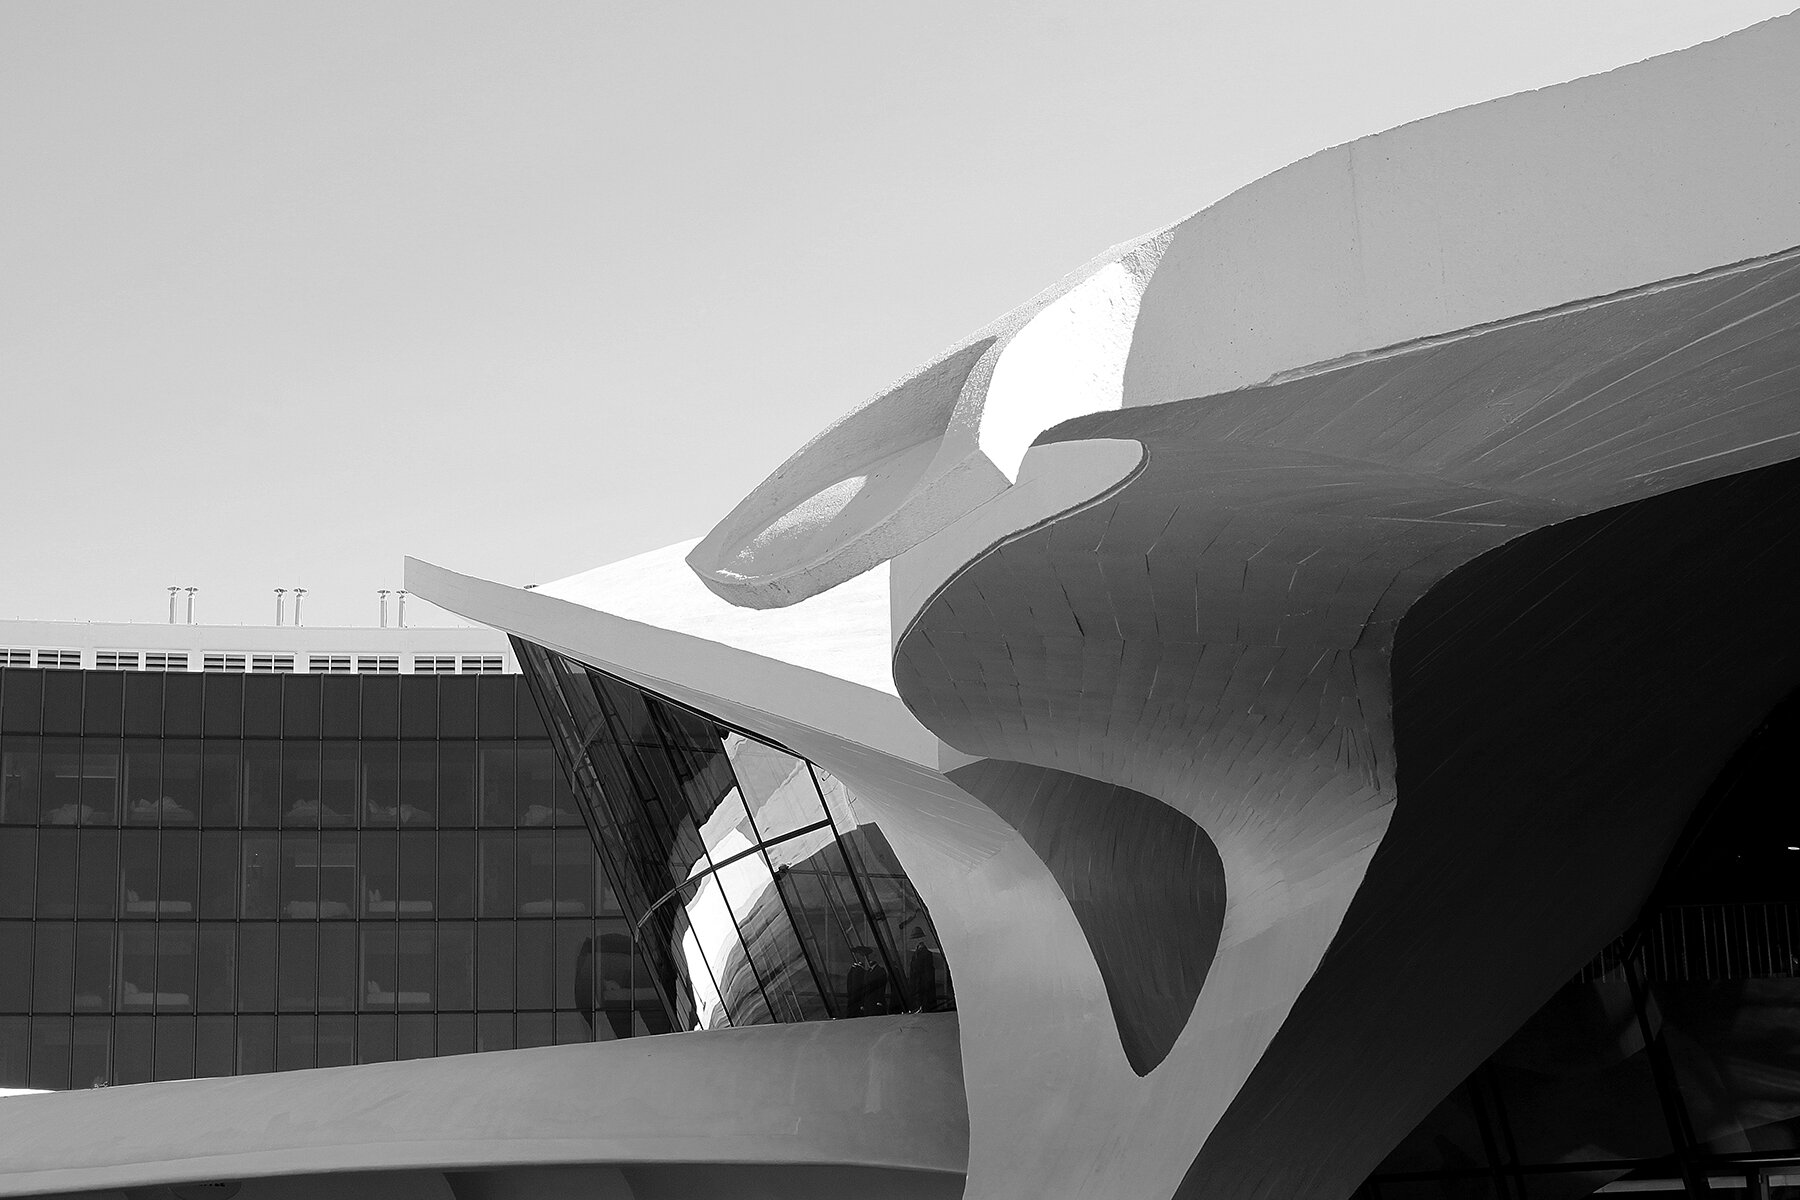 Saarinen's plastic forms contrast with the acoustically engineered curtain wall of the hotel wings. Photo: Patrick Templeton.